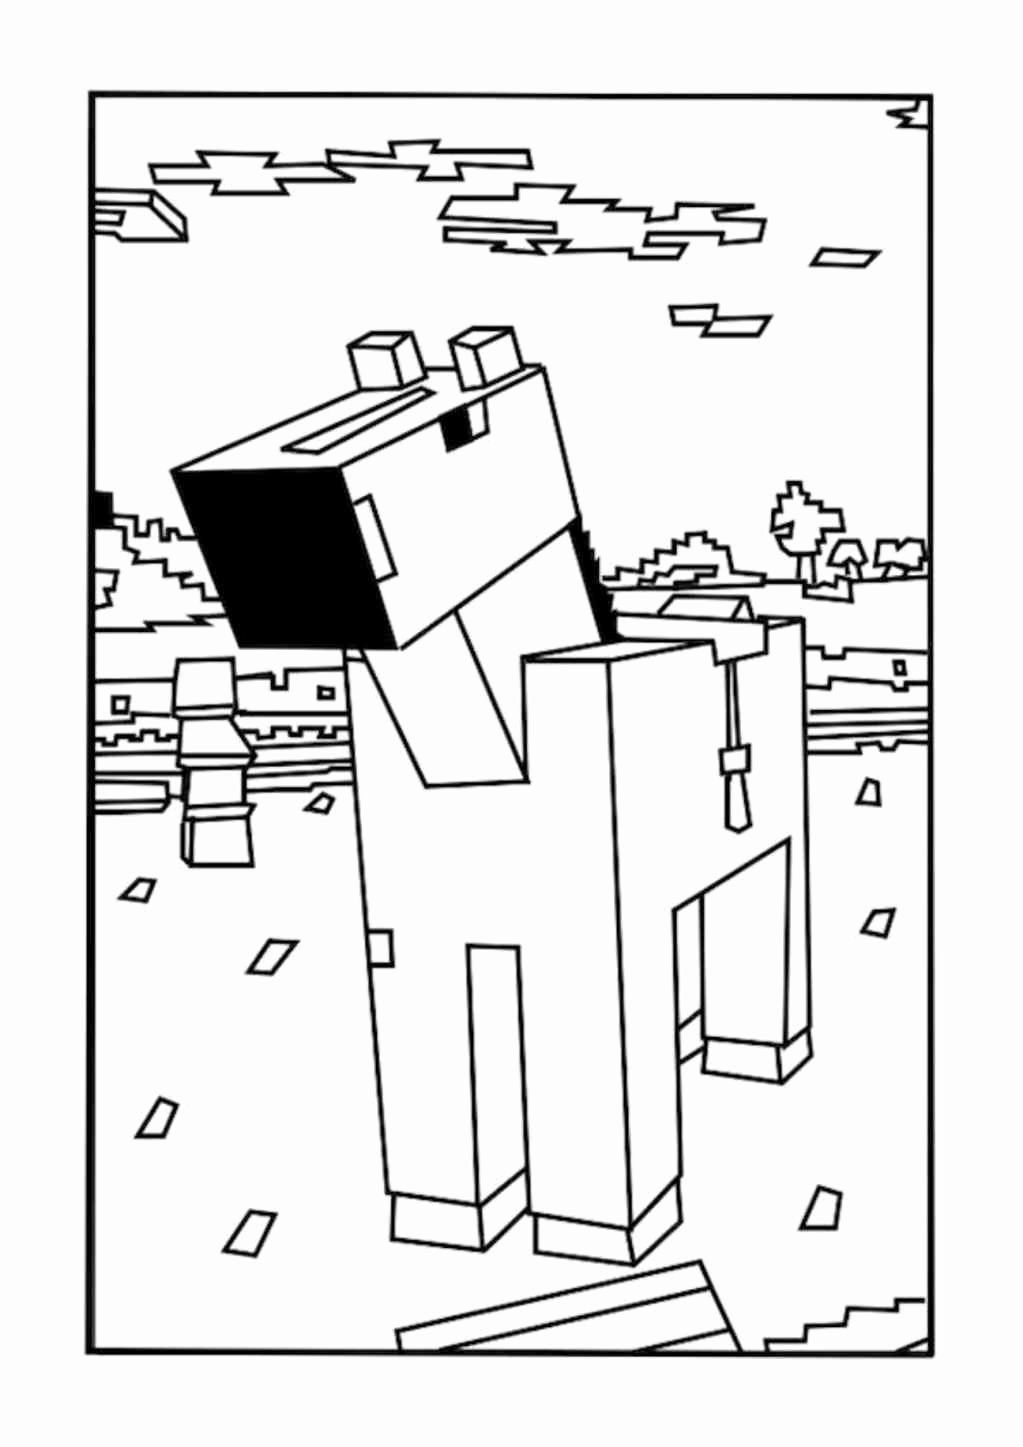 Minecraft Creeper Coloring Page Lovely Minecraft Coloring Pages Creeper Face At Getcolori Minecraft Coloring Pages Coloring Pages For Boys Horse Coloring Pages